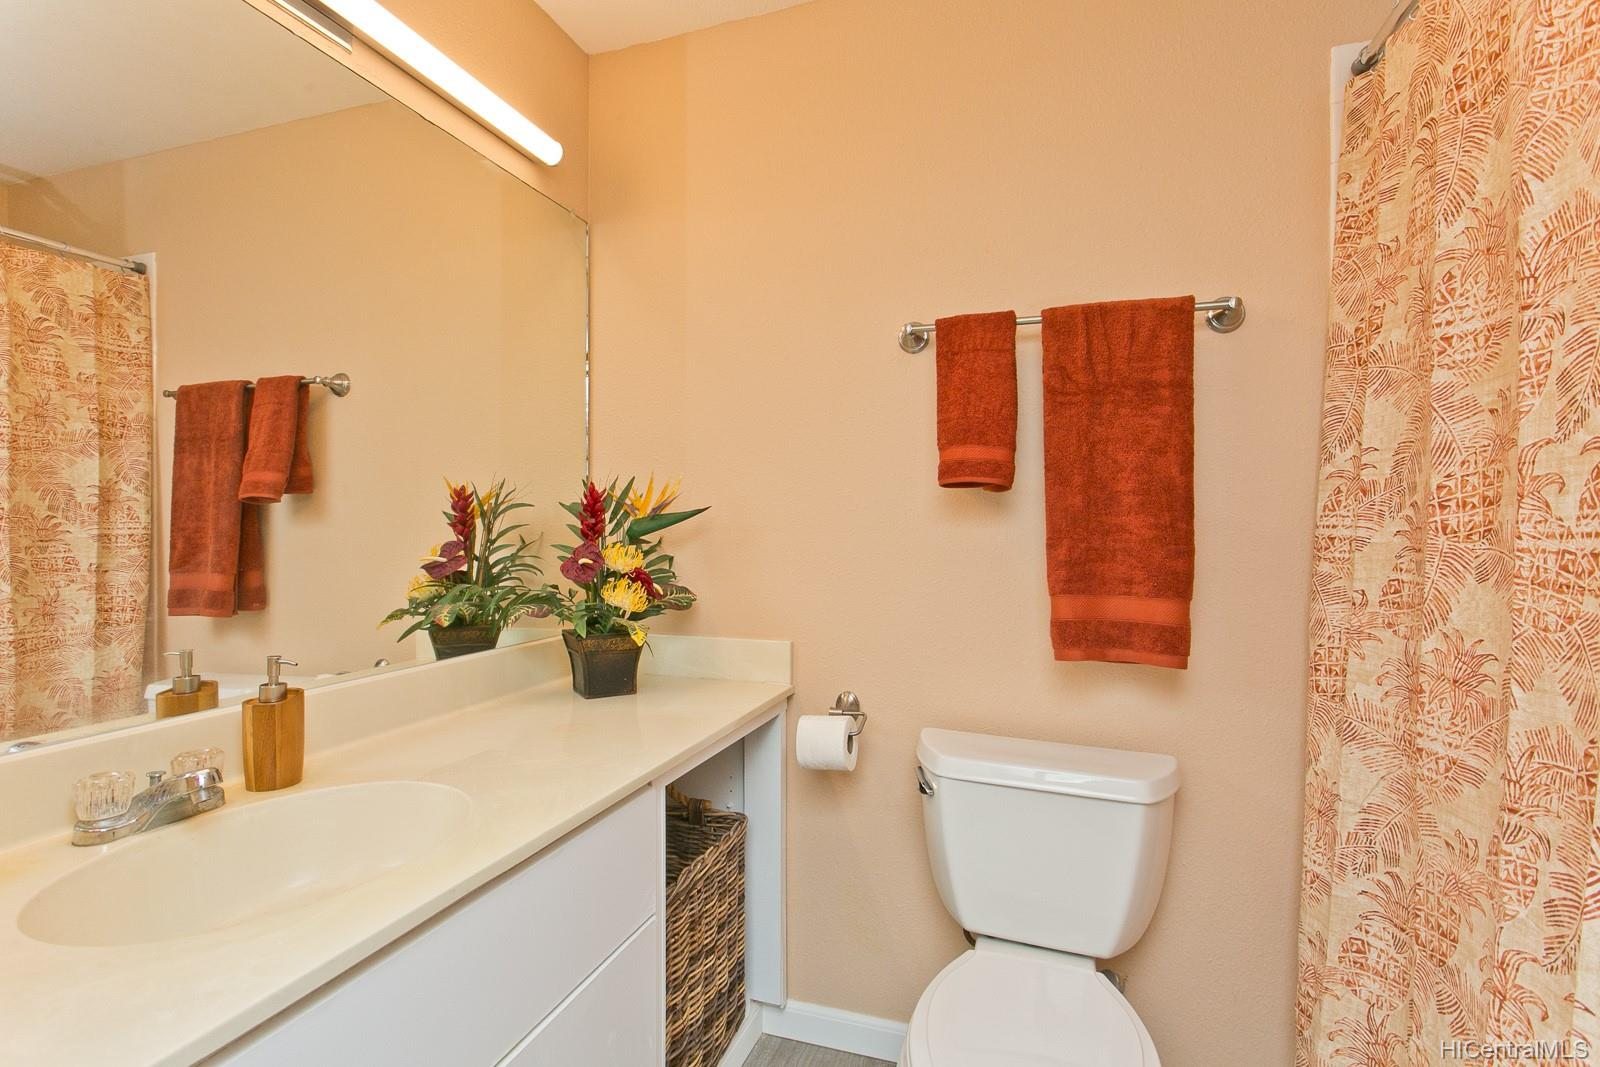 Highlands At Waikele condo # E202, Waipahu, Hawaii - photo 11 of 11